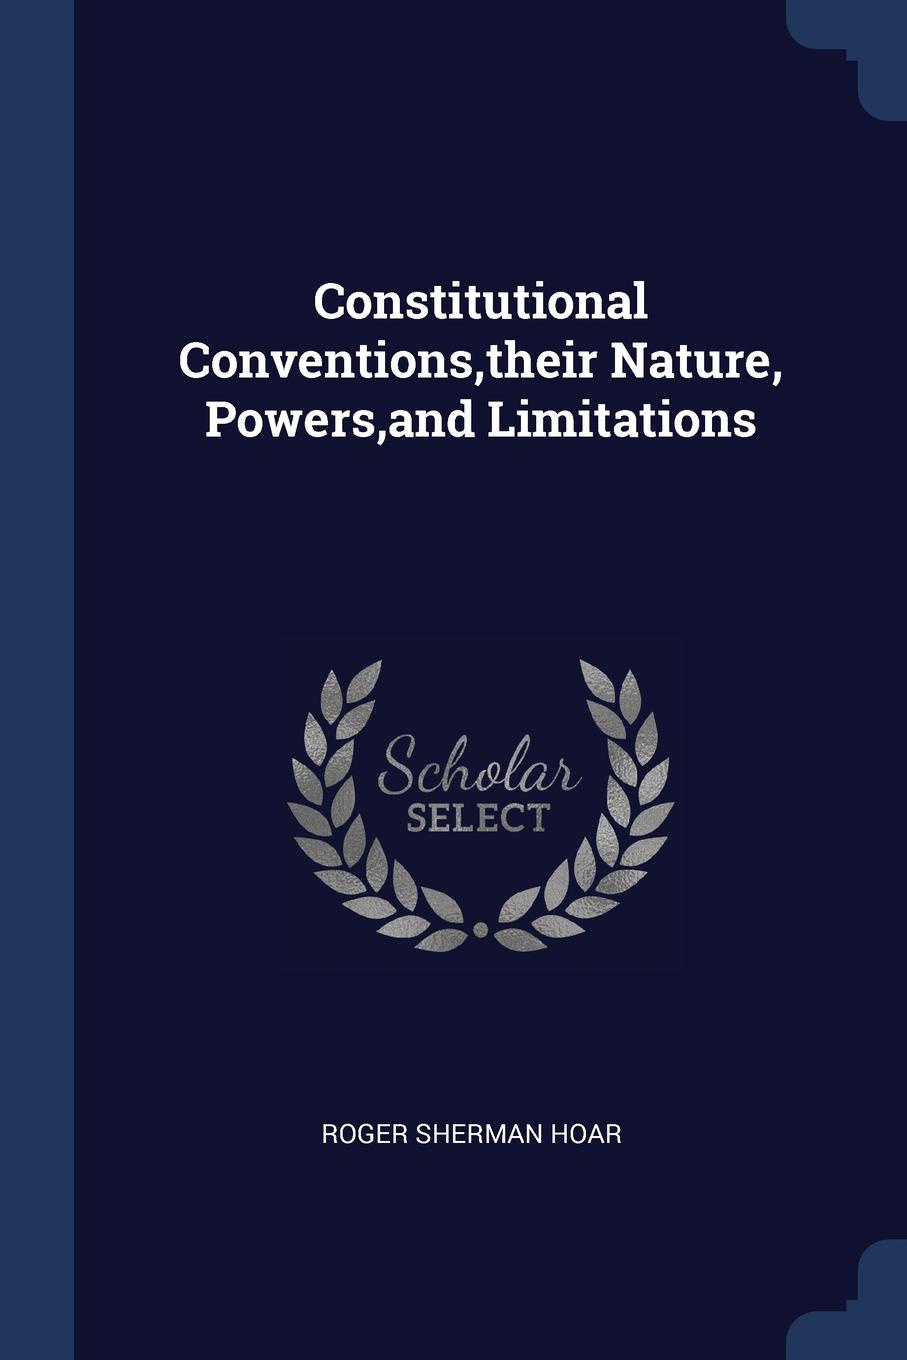 Roger Sherman Hoar Constitutional Conventions,their Nature, Powers,and Limitations